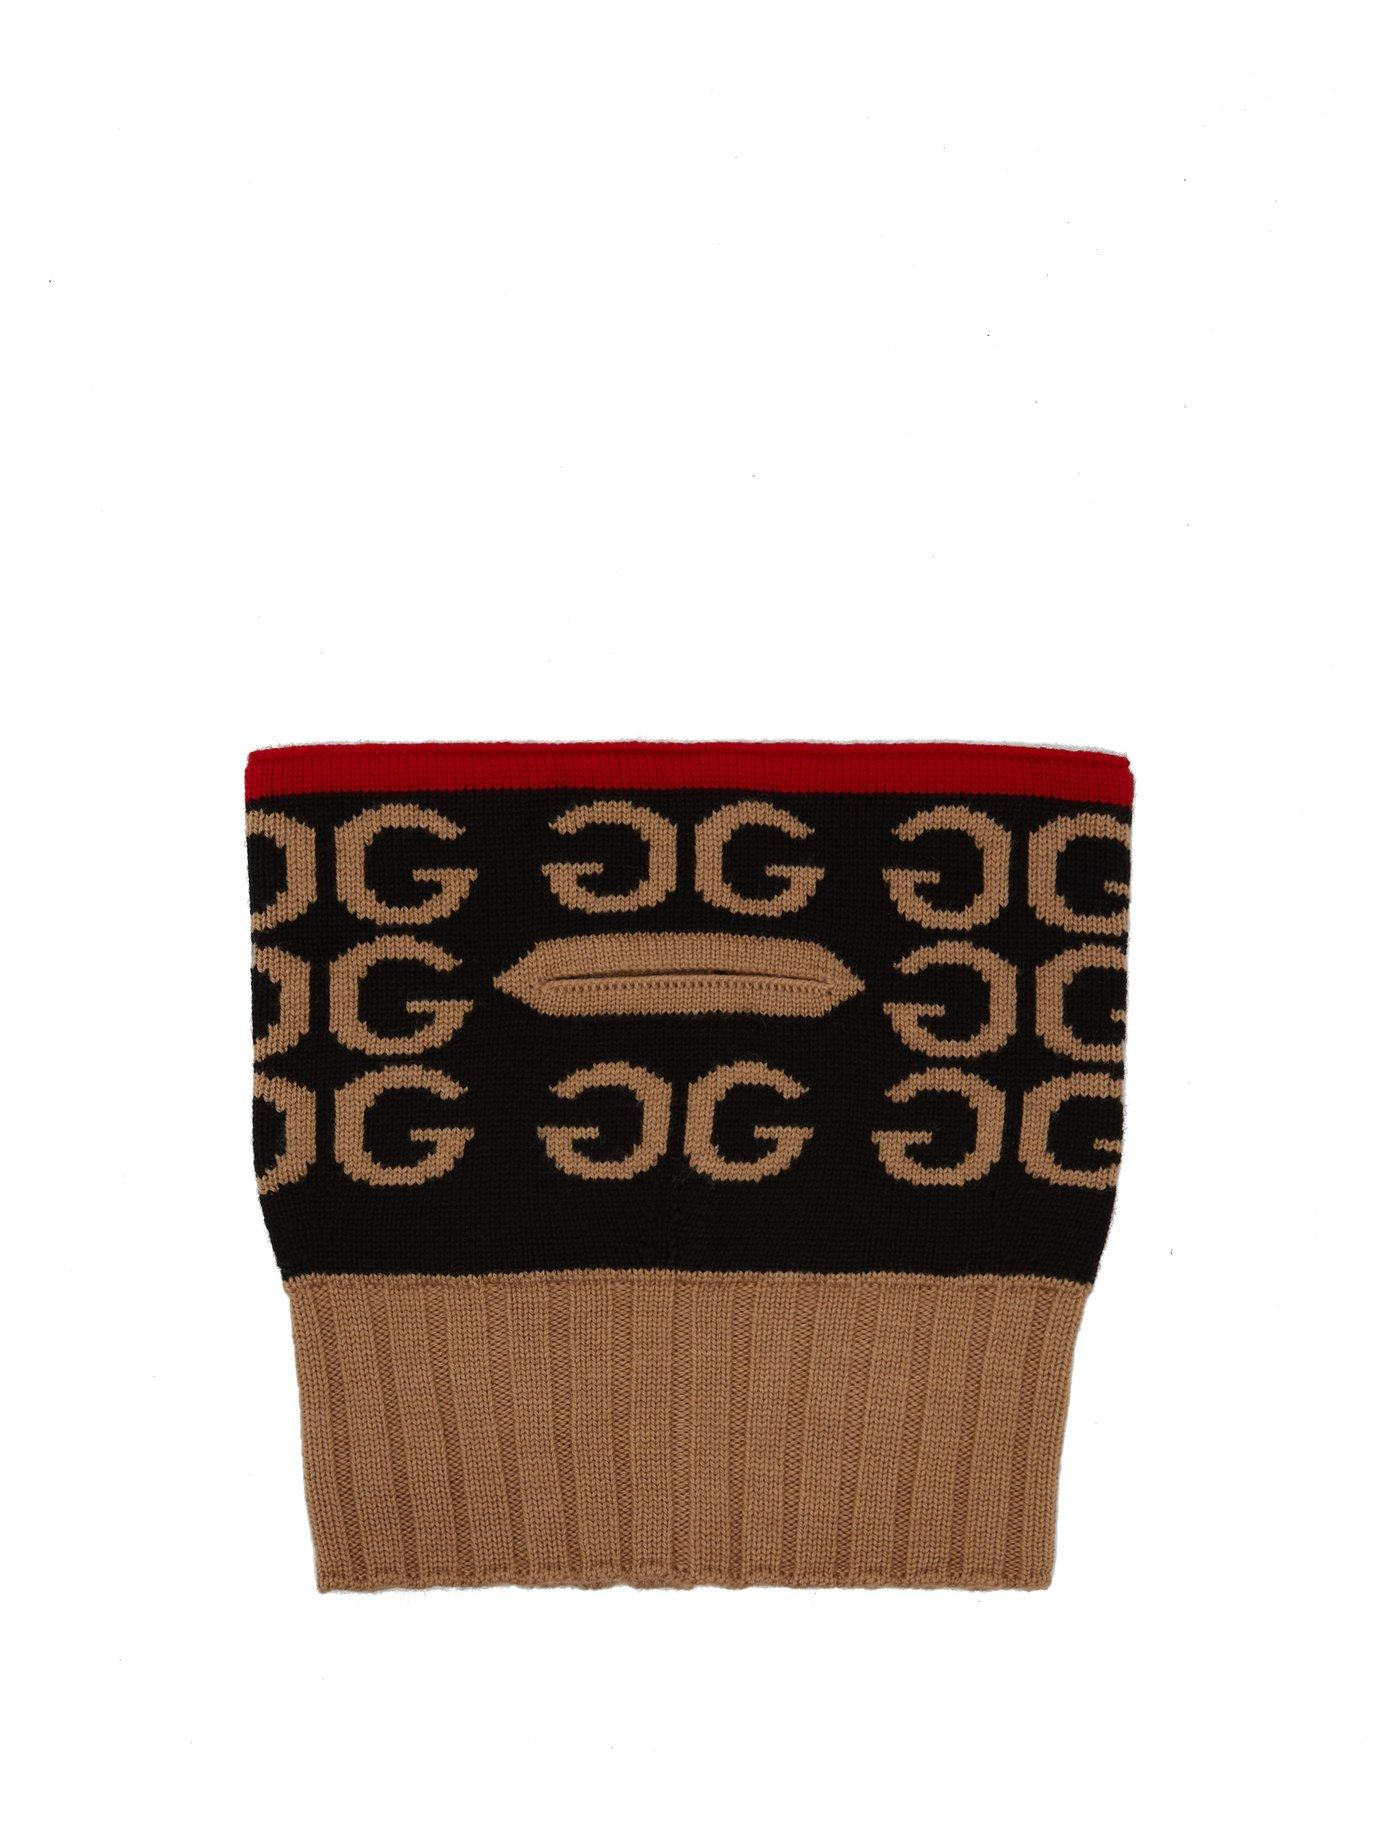 0c5ae91a5b719 Gucci Black And Camel Logo Intarsia Wool Neck Scarf In 6560 Red ...